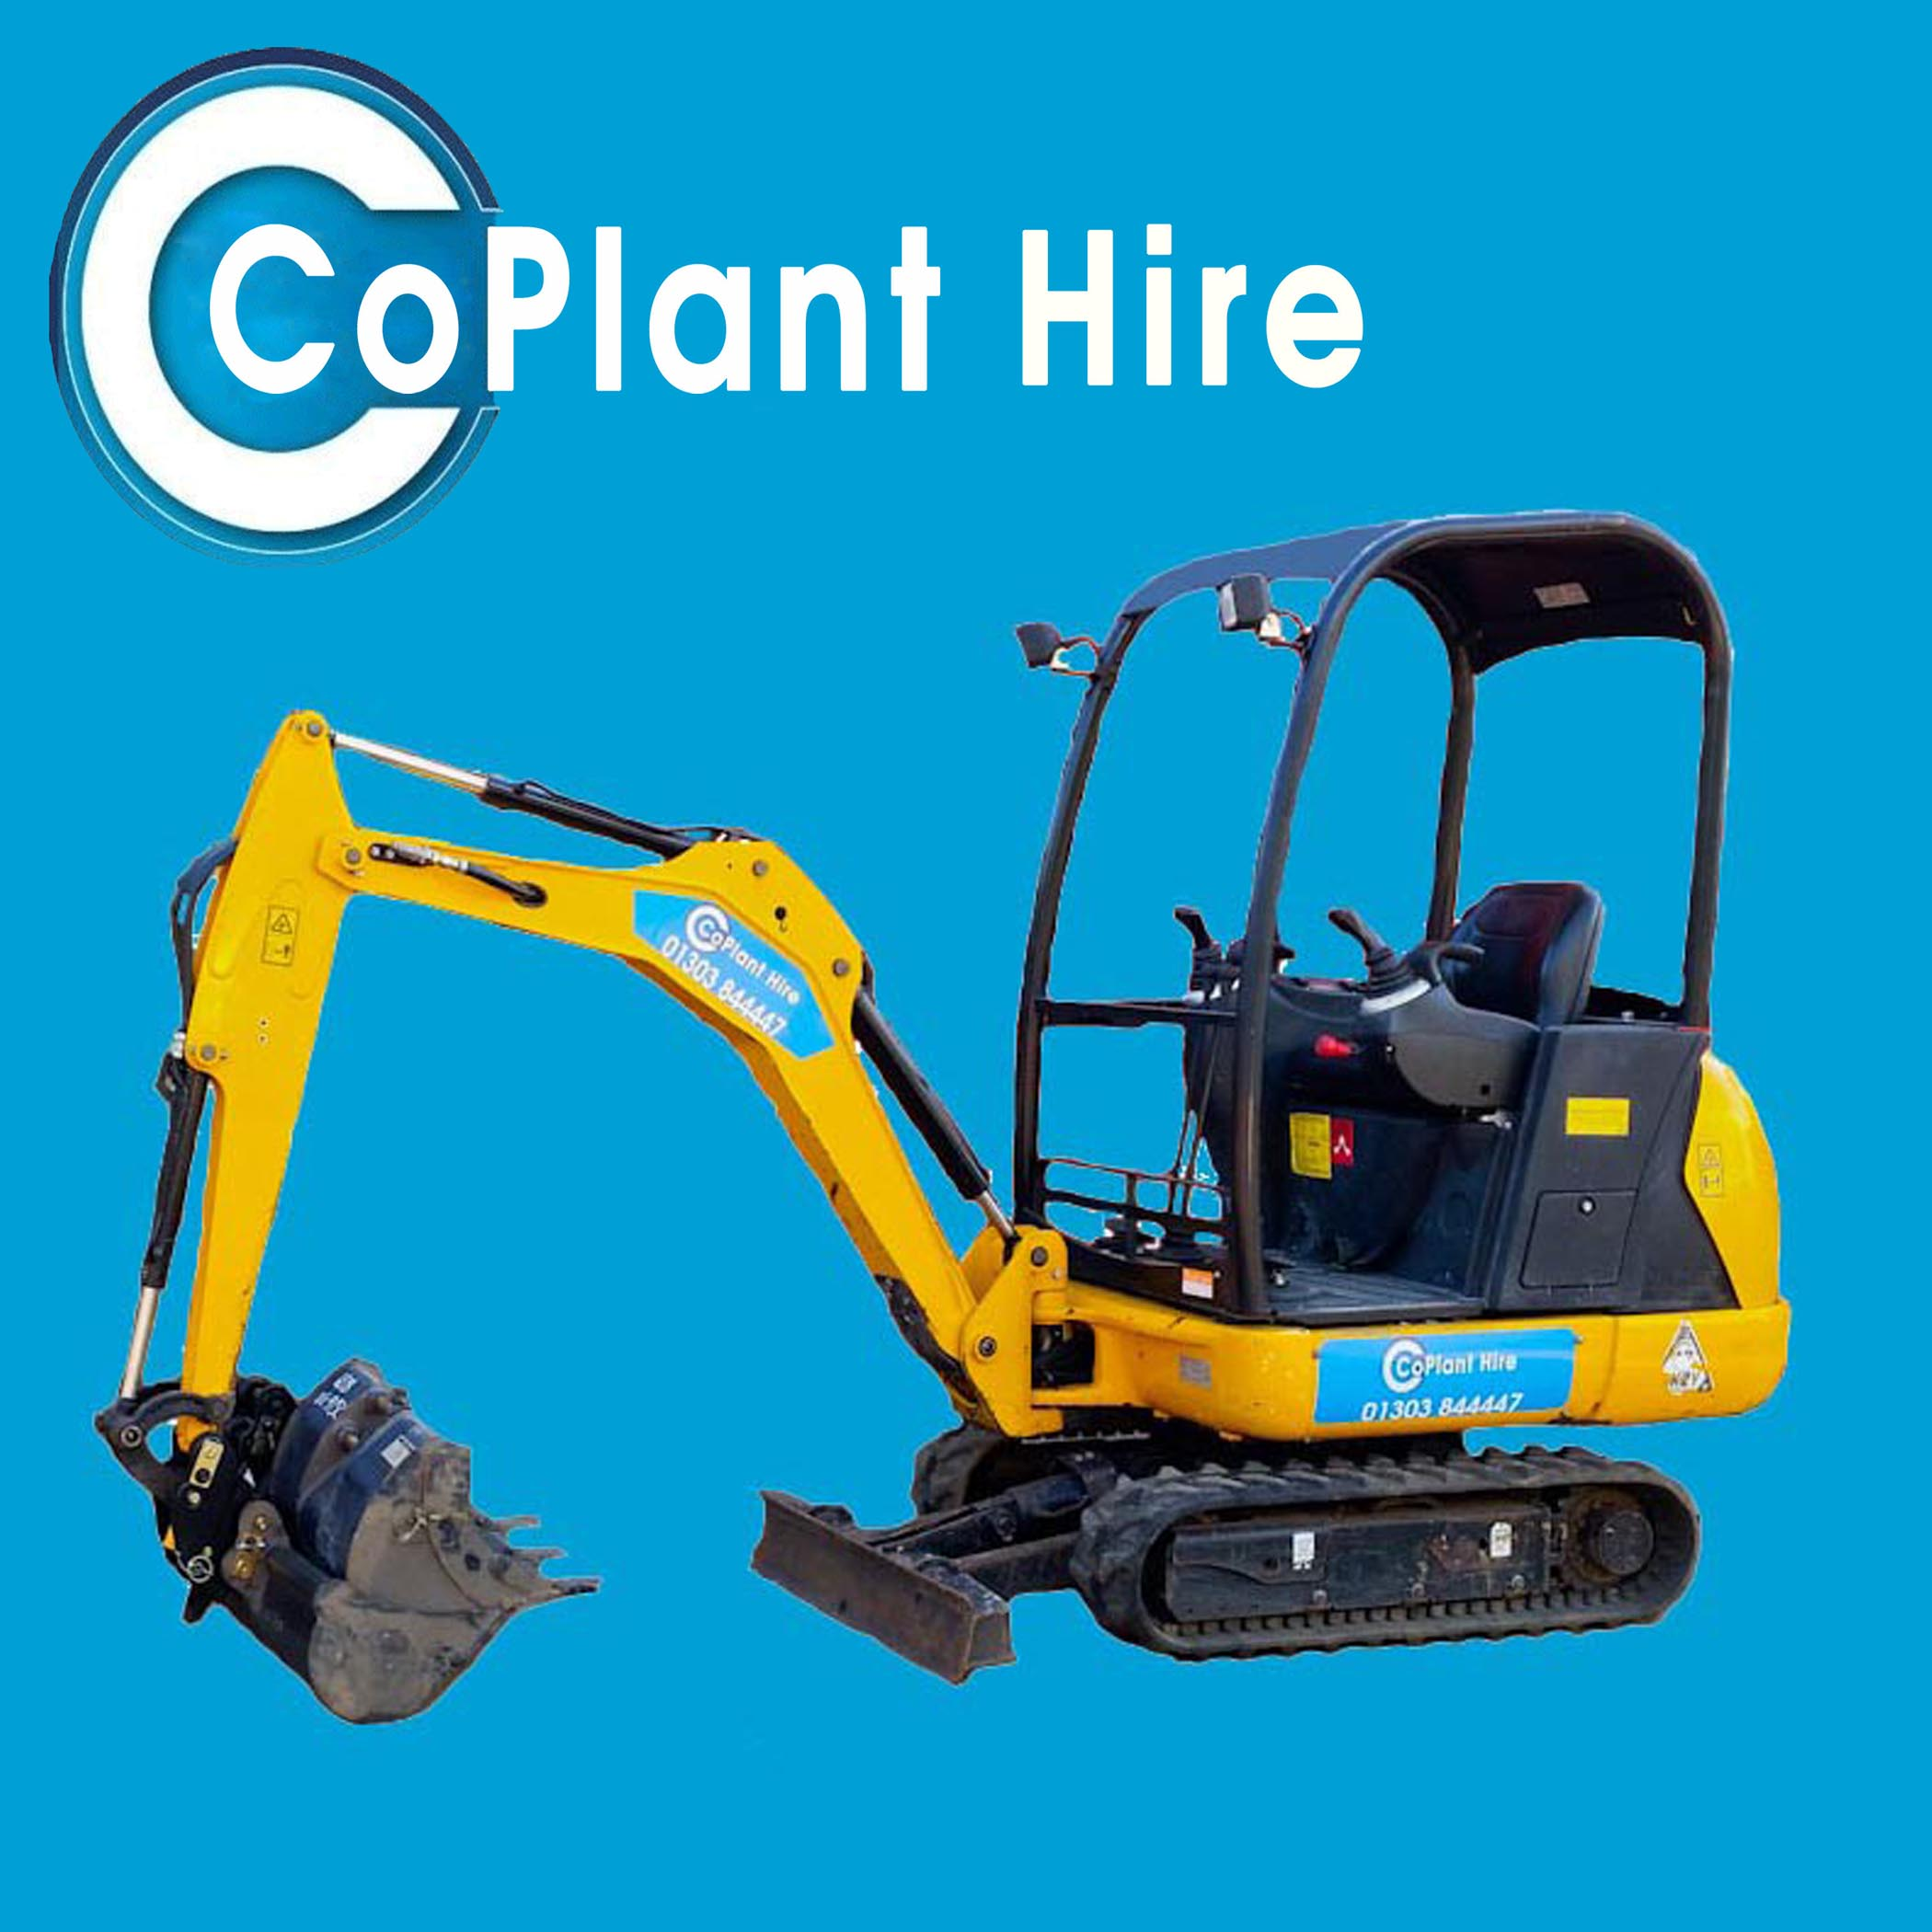 1.5 ton mini digger for hire in kent